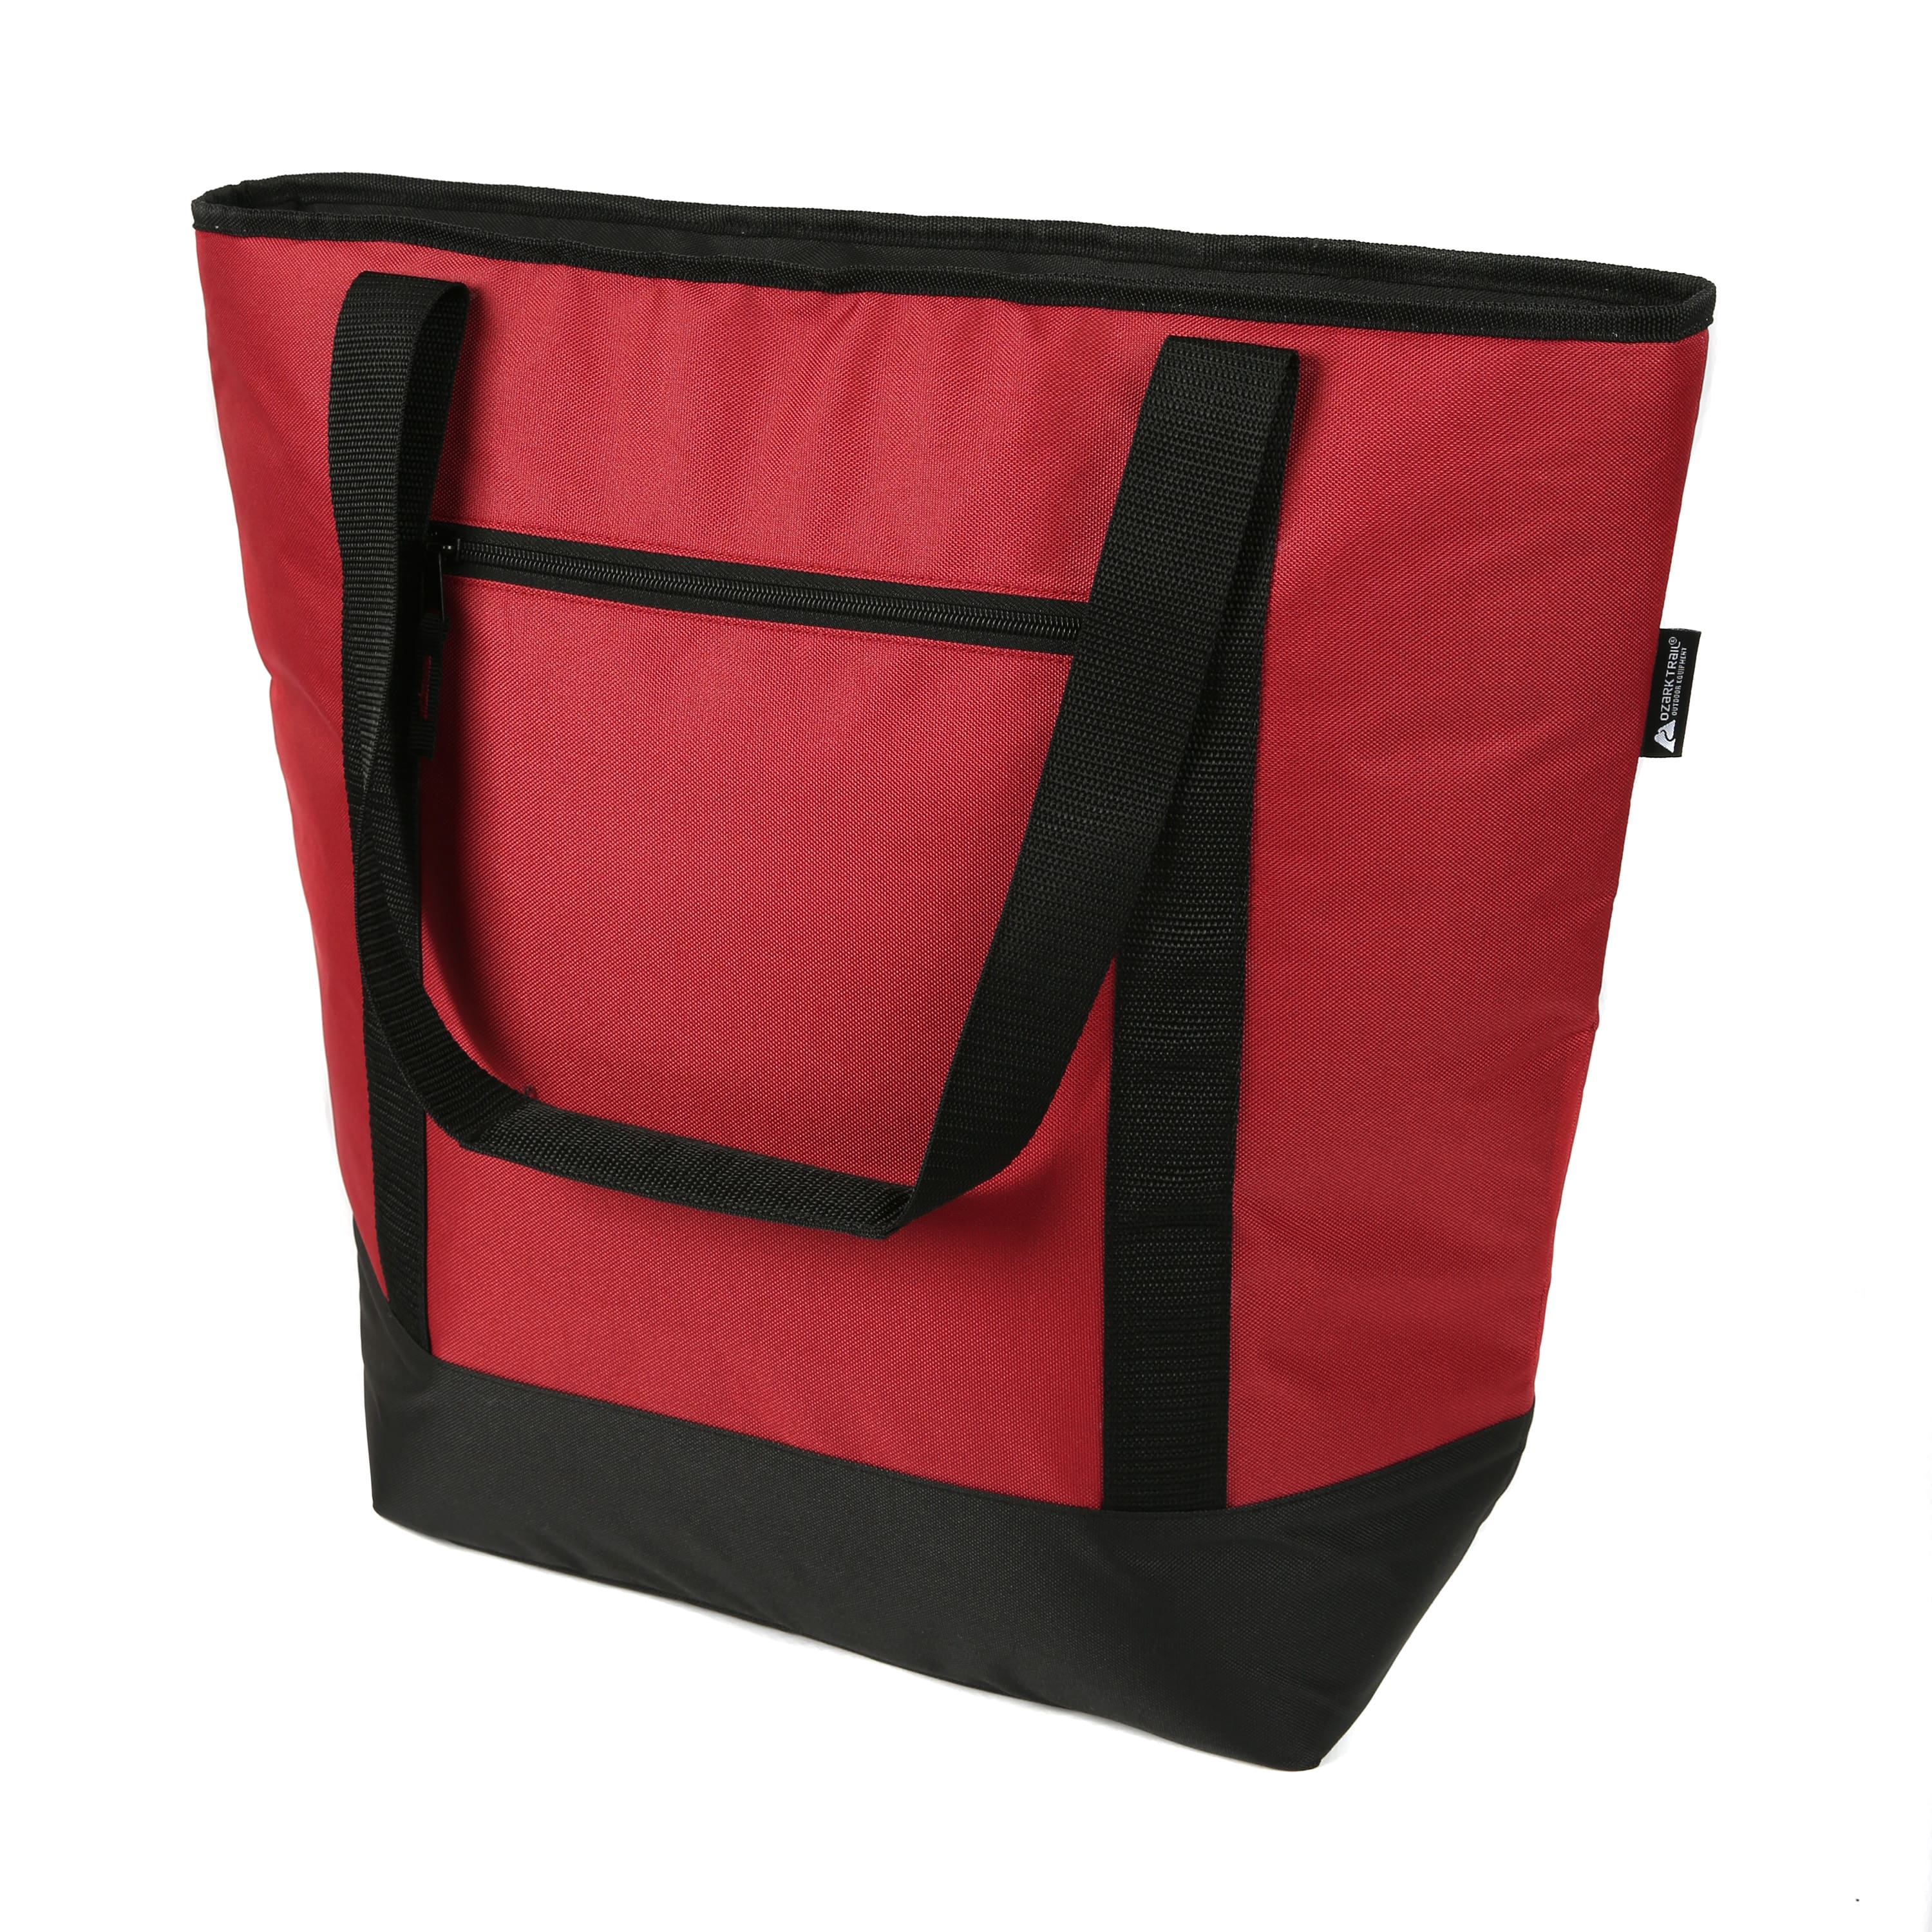 Ozark Trail 50 Can Cooler Tote $3.50 Or Lower @ Walmart